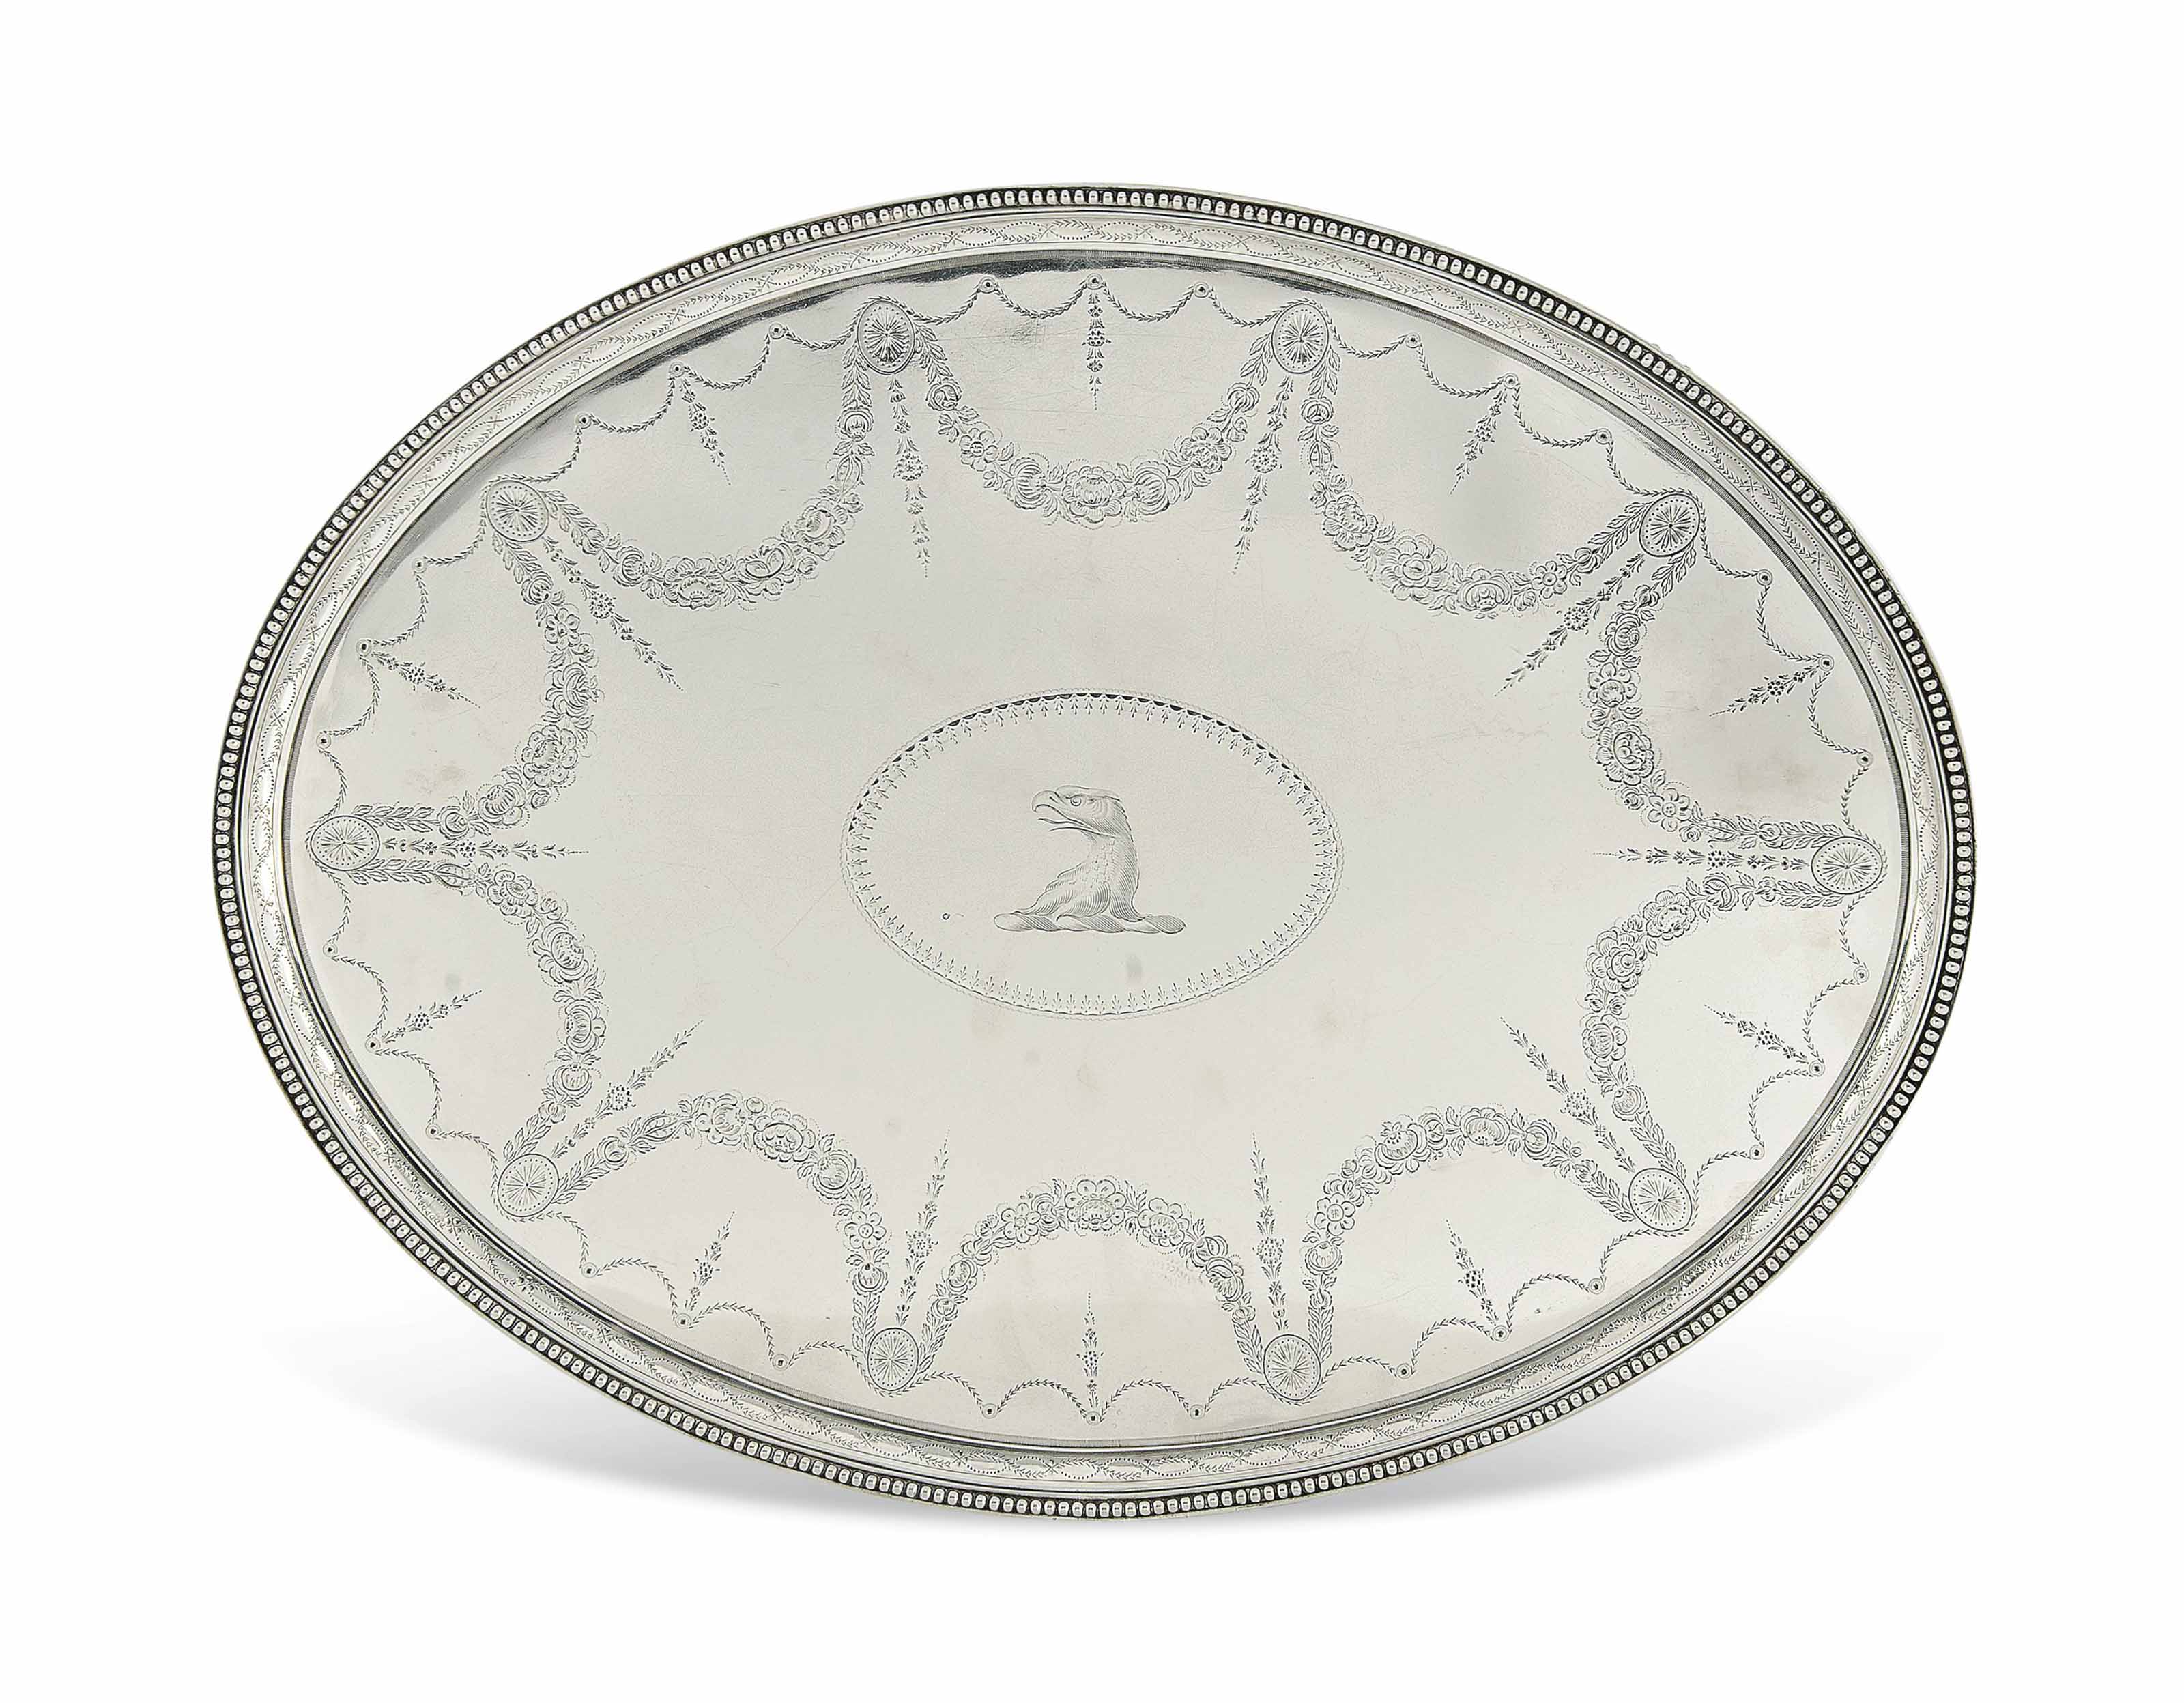 A FINE AND LARGE GEORGE III SILVER OVAL TRAY